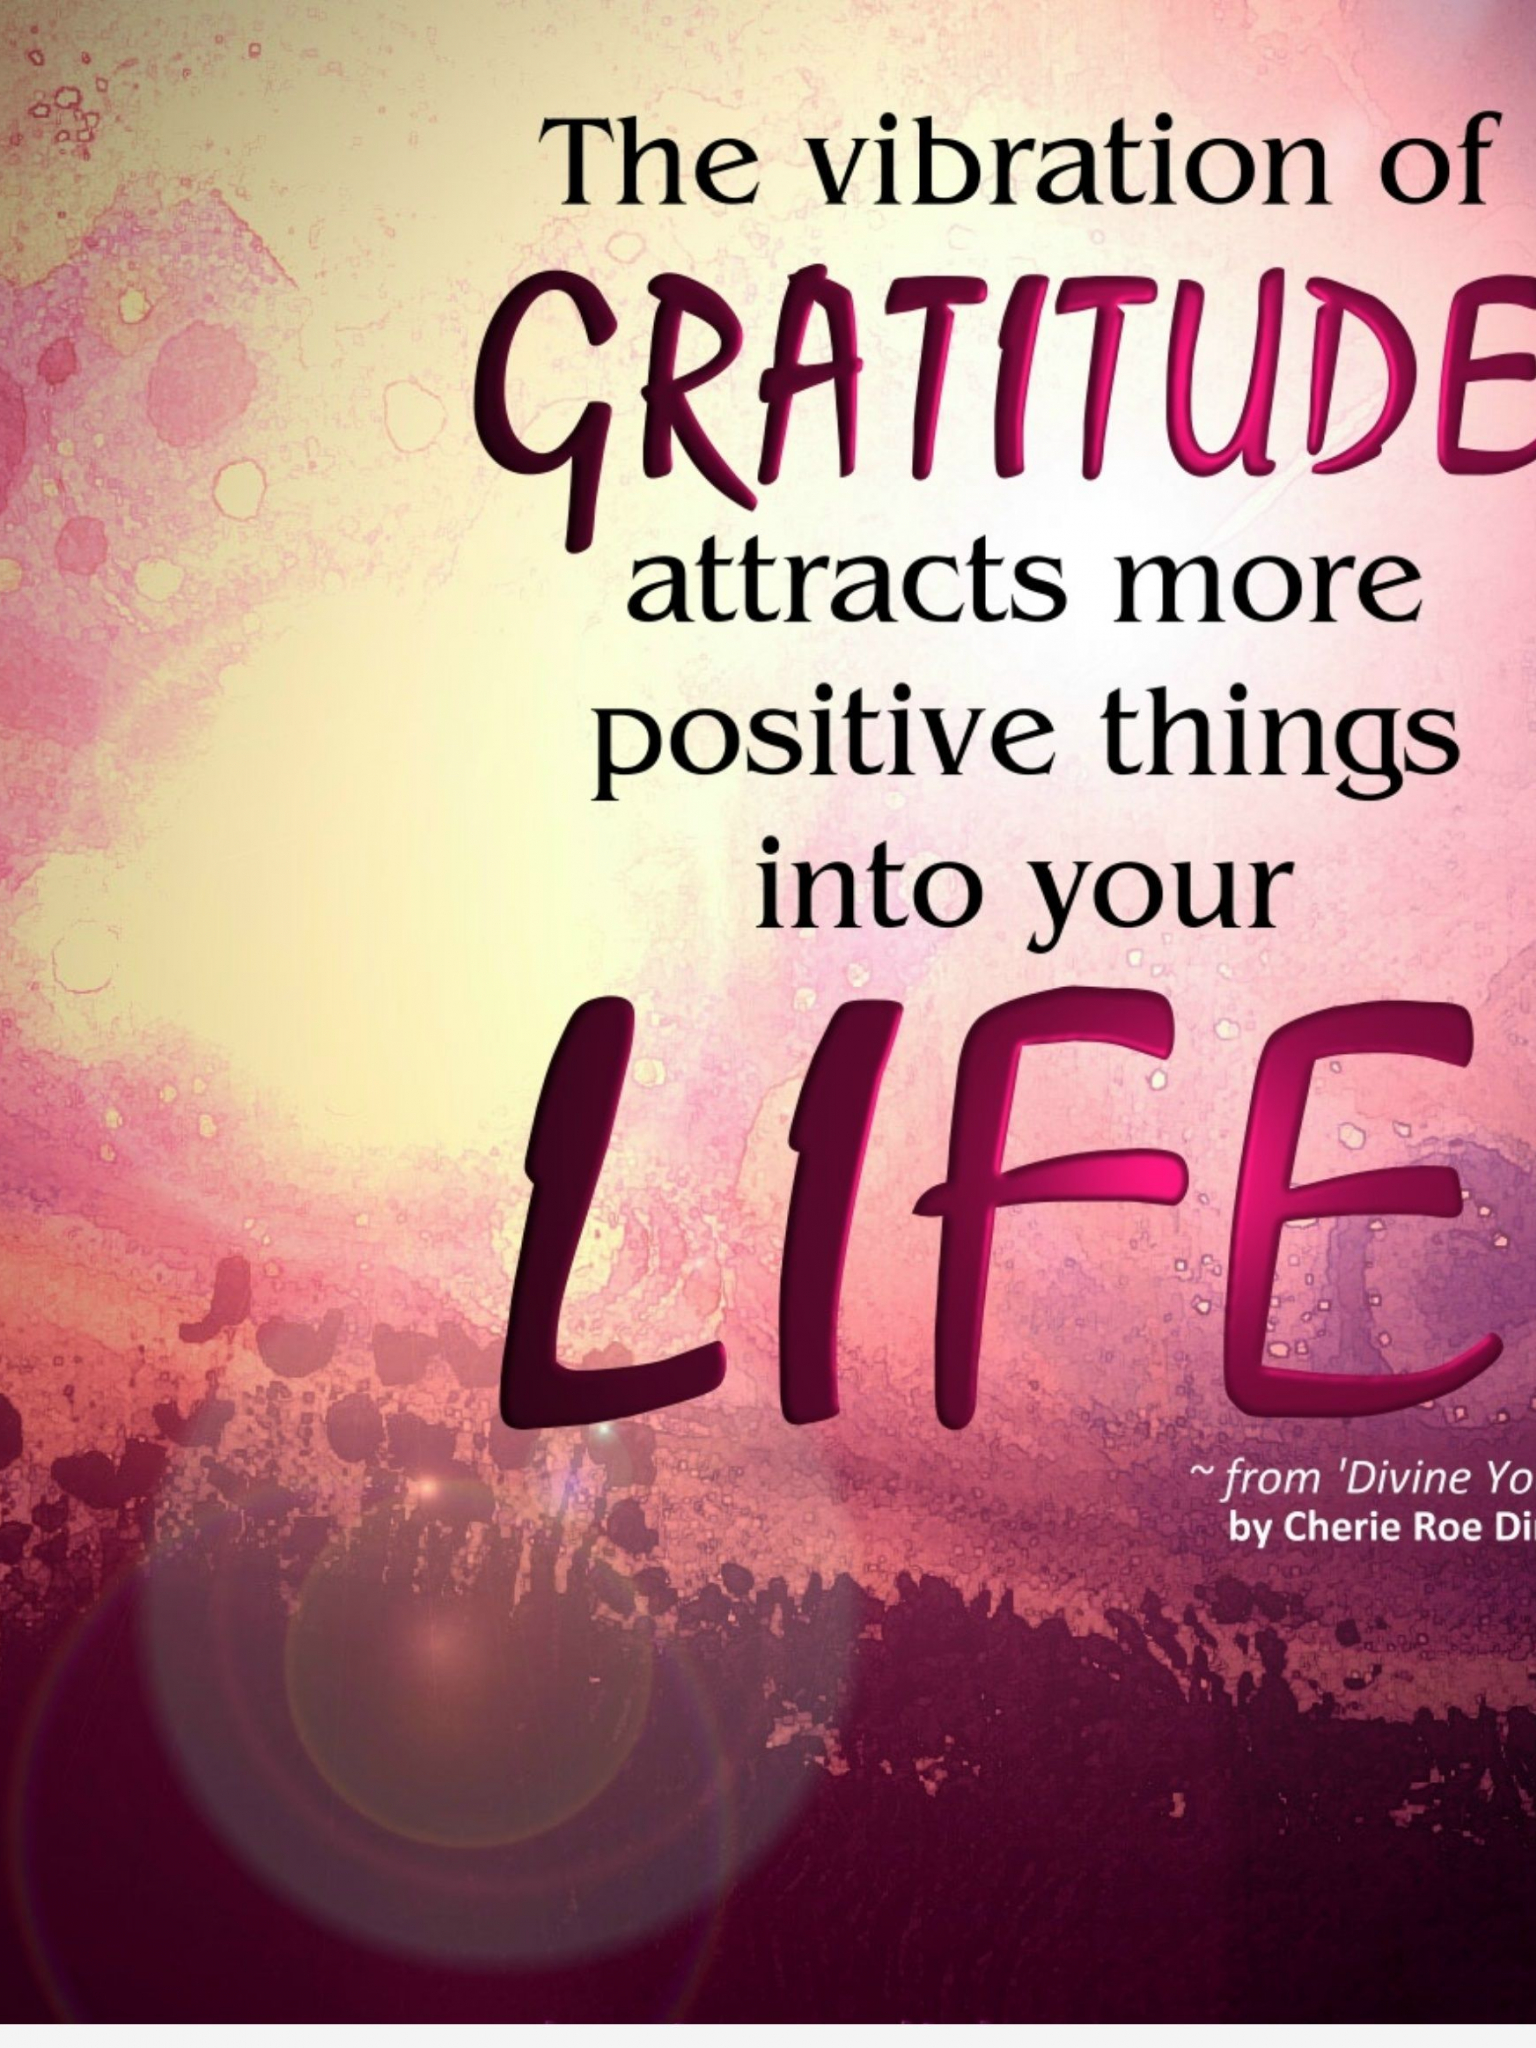 Free Download Grateful Gratitude Quotes Sayings Images Wallpapers 2080x2326 For Your Desktop Mobile Tablet Explore 52 Grateful Wallpaper Grateful Wallpaper Grateful Dead Background Grateful Dead Wallpaper